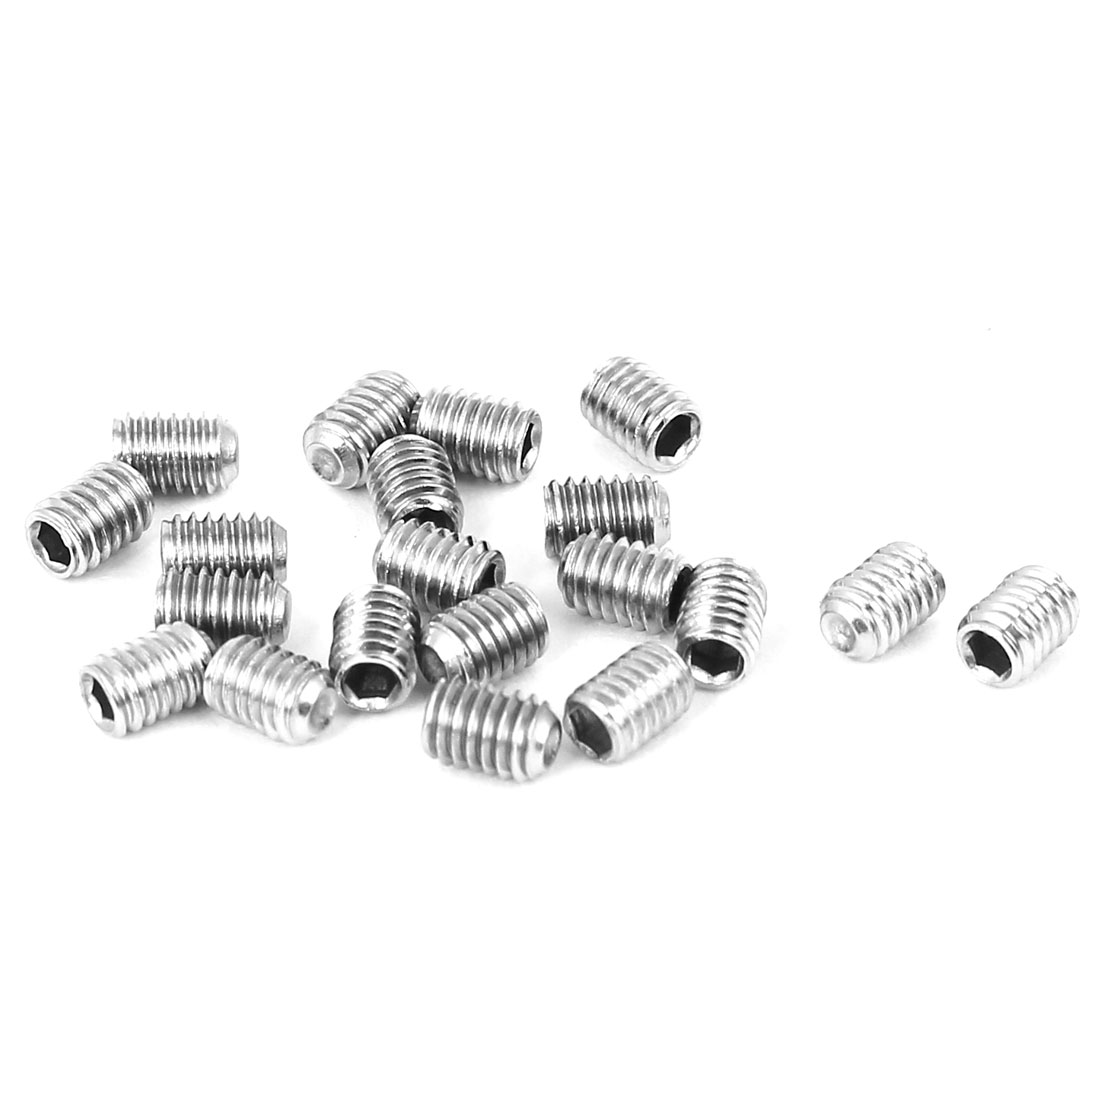 M3x4mm Cup Point Hex Socket Grub Set Screws 20pcs for Gear